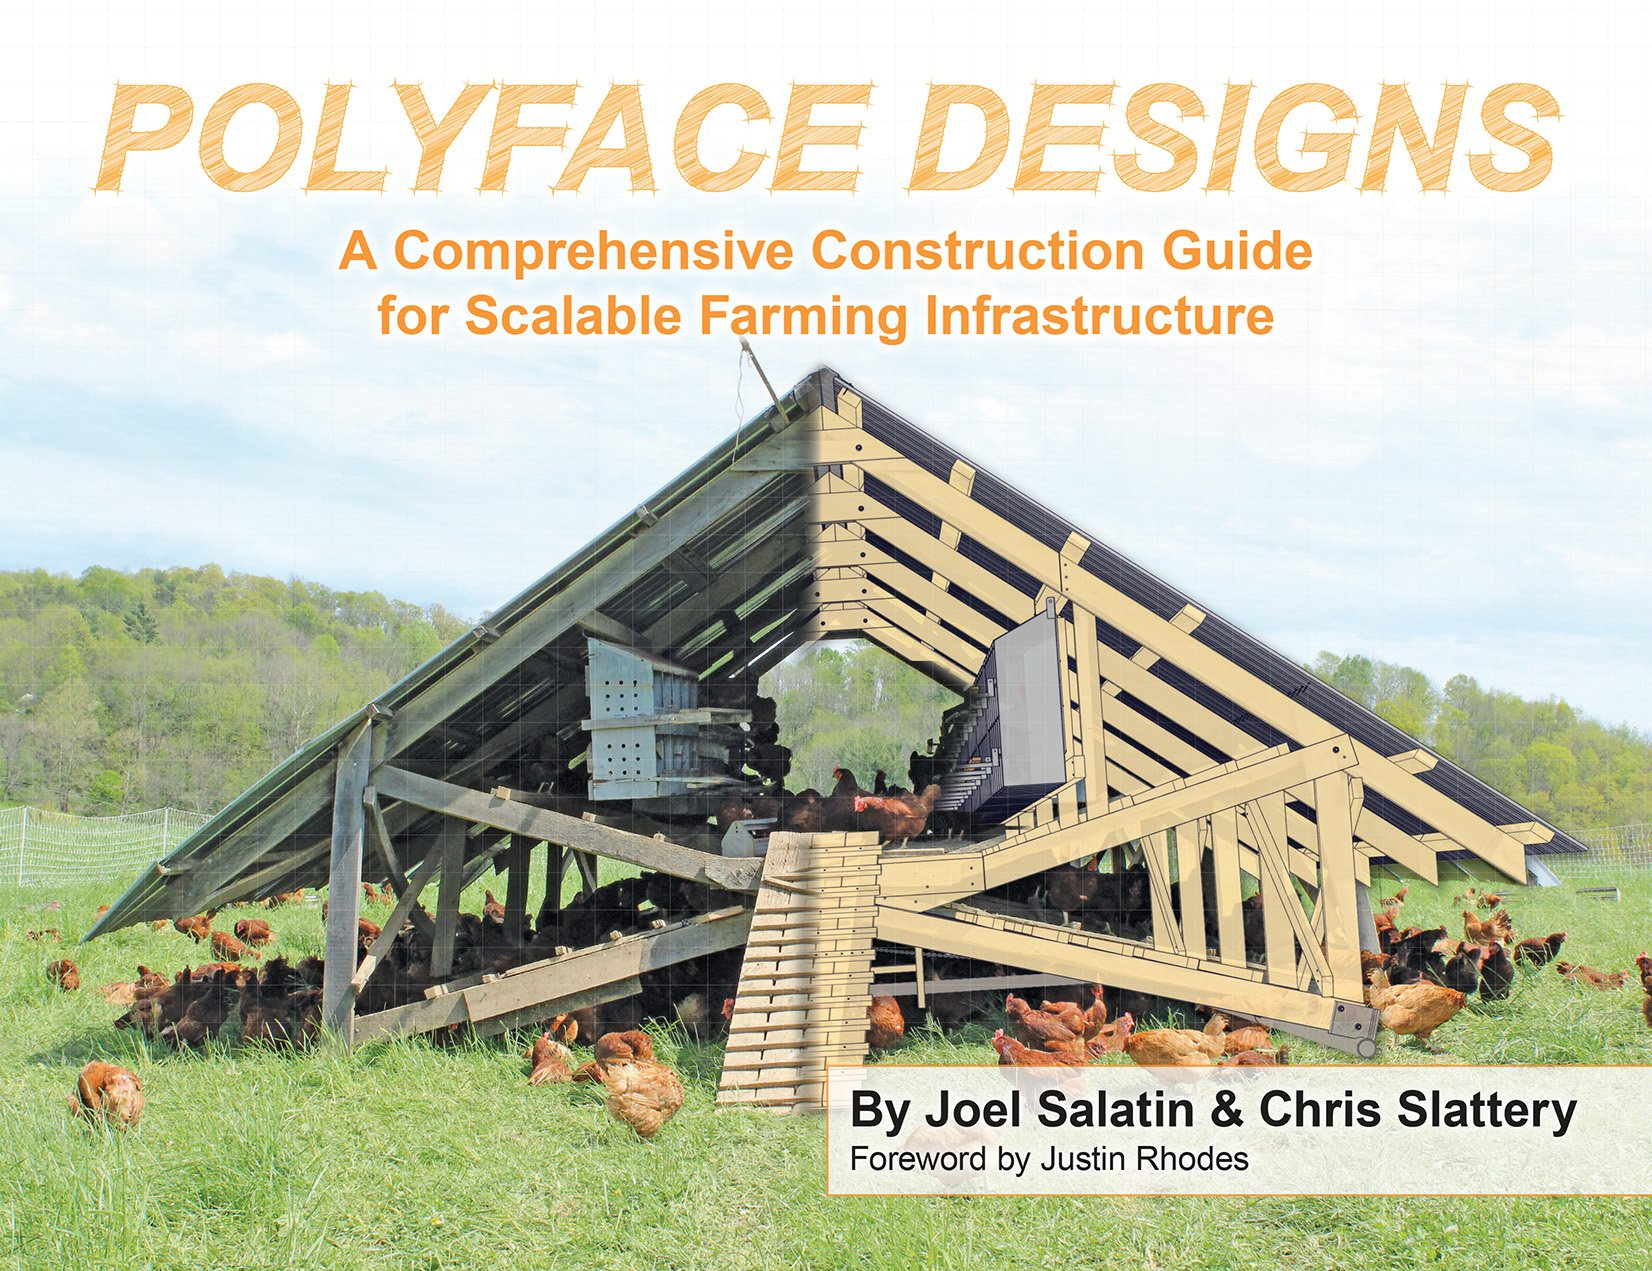 The Polyface Designs cover